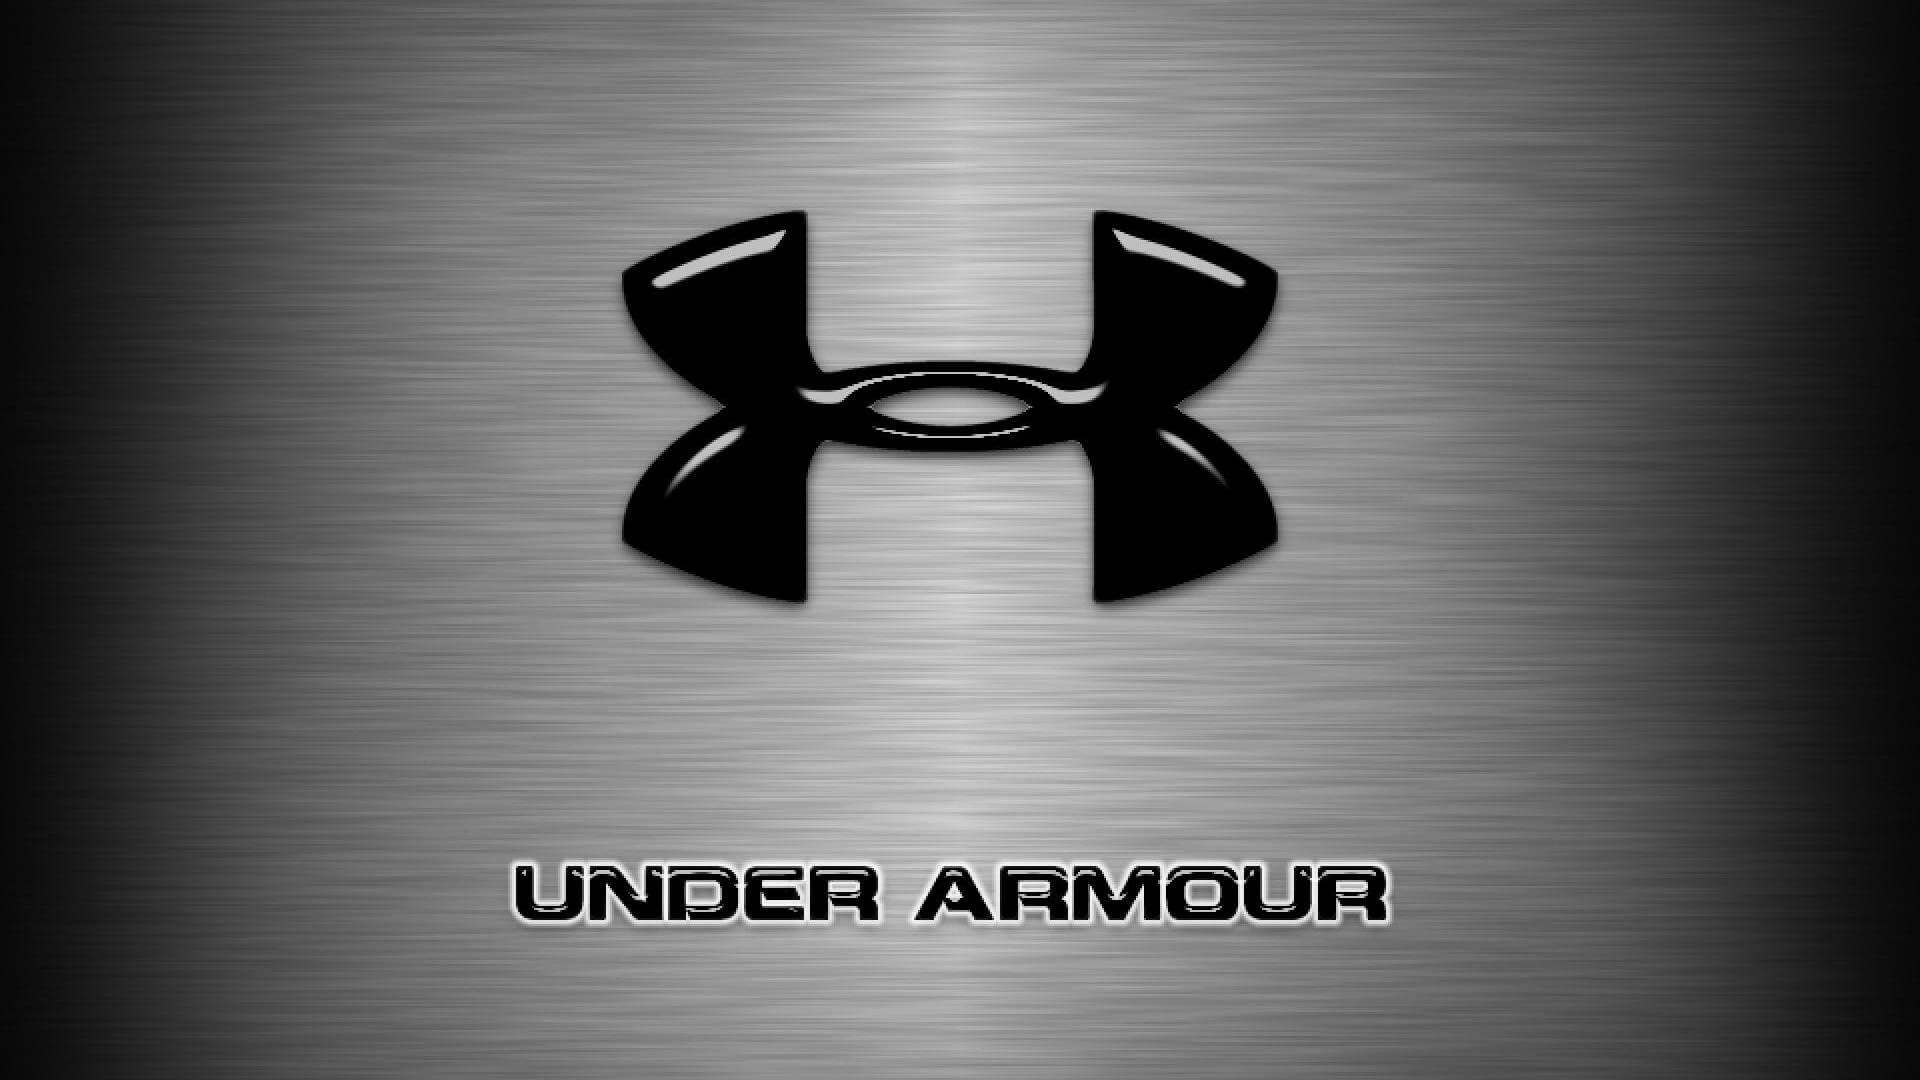 Under Armour Wallpapers HD   HD Wallpapers, Backgrounds, Images .